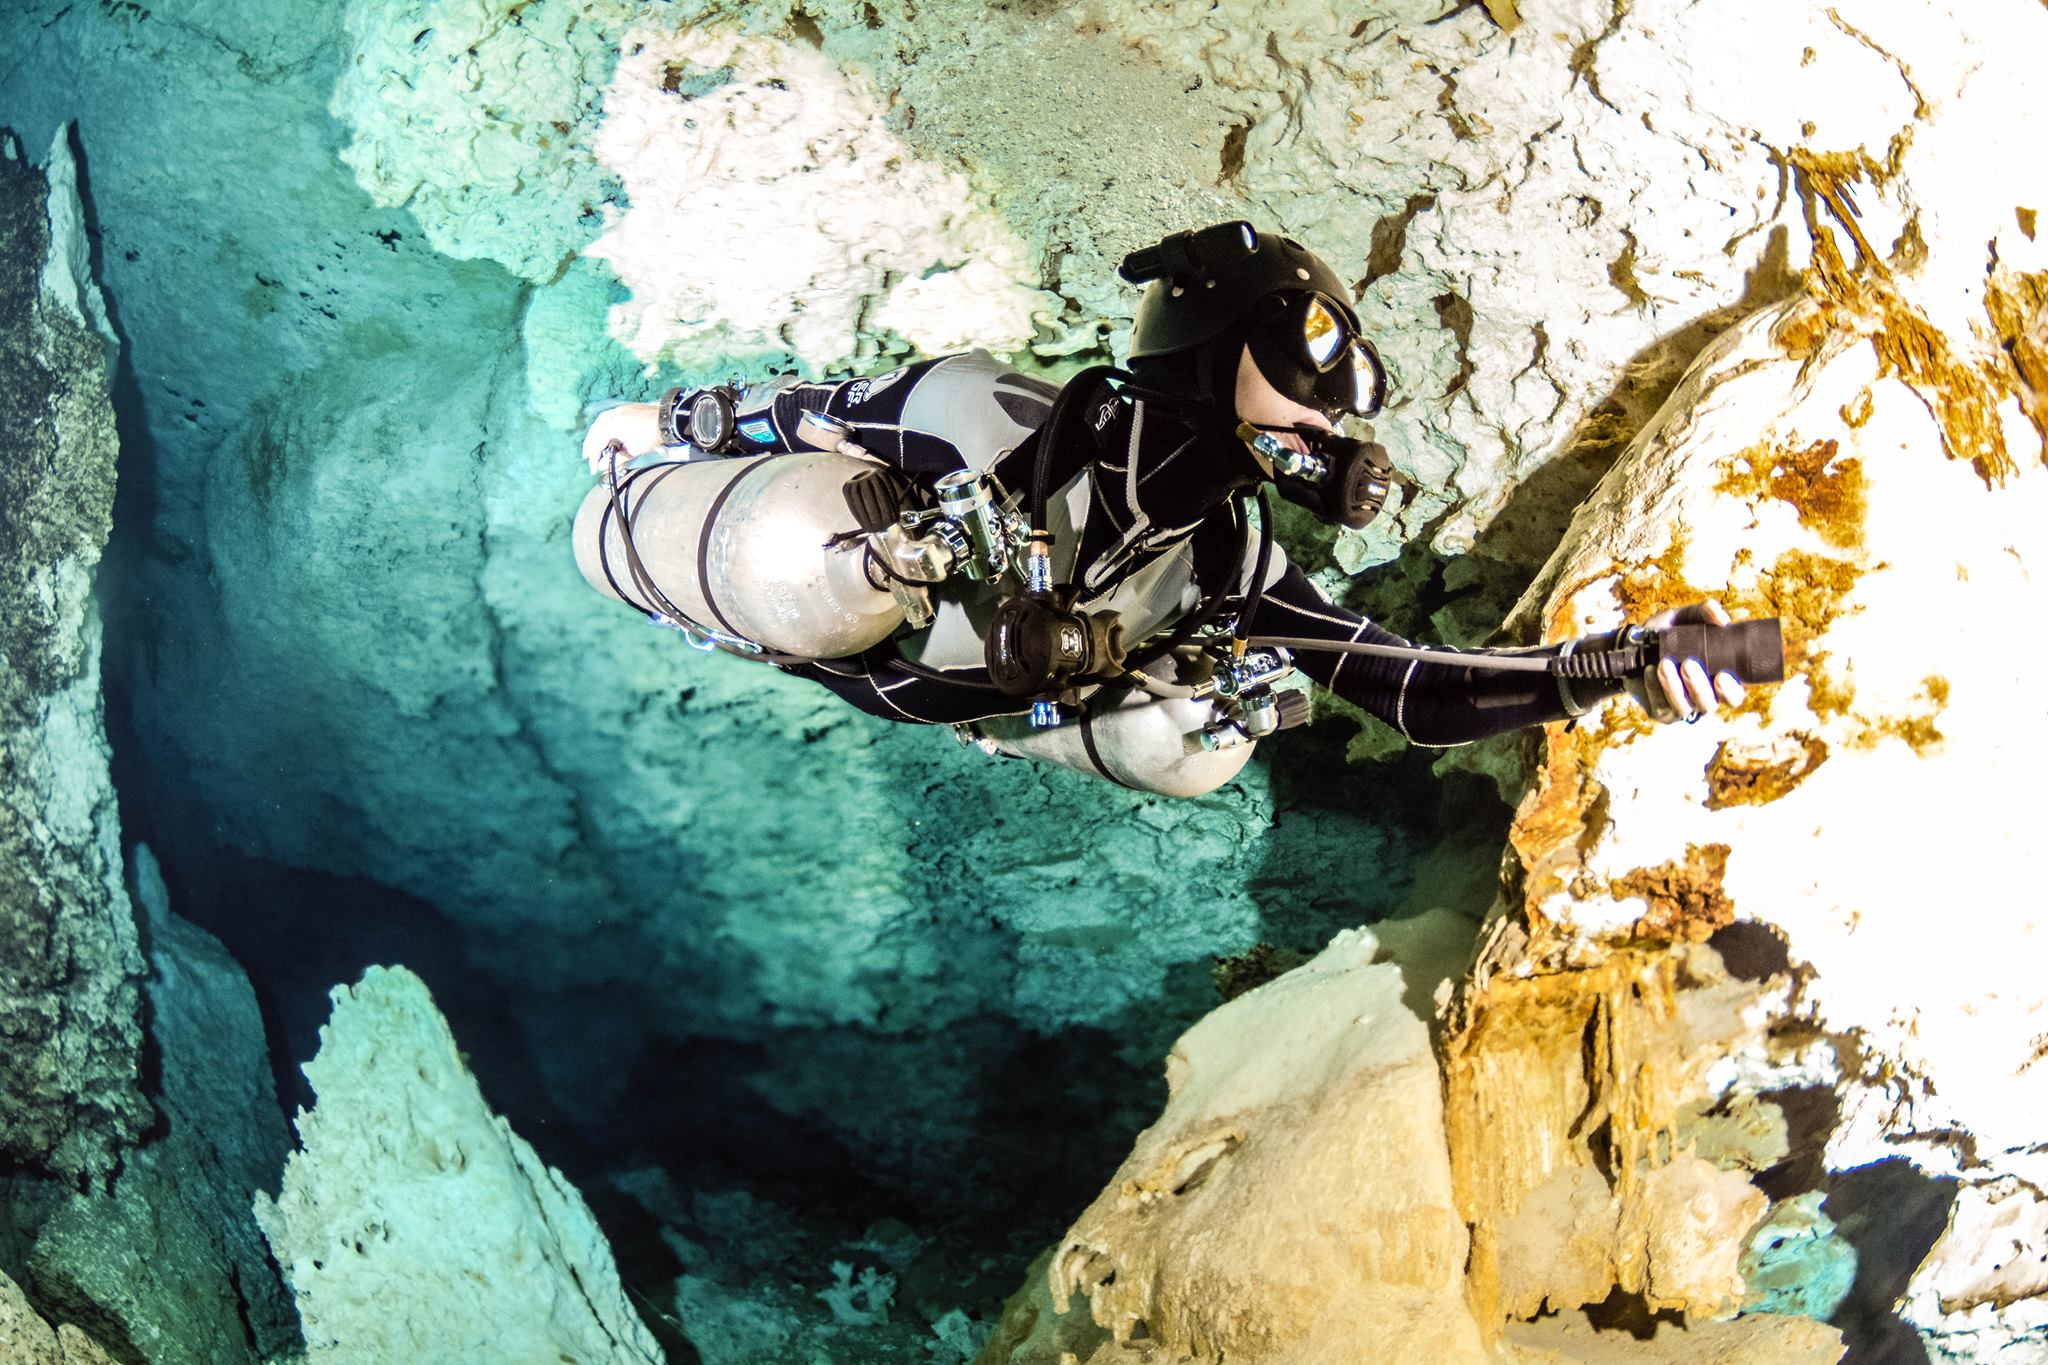 cave diving sidemount diving